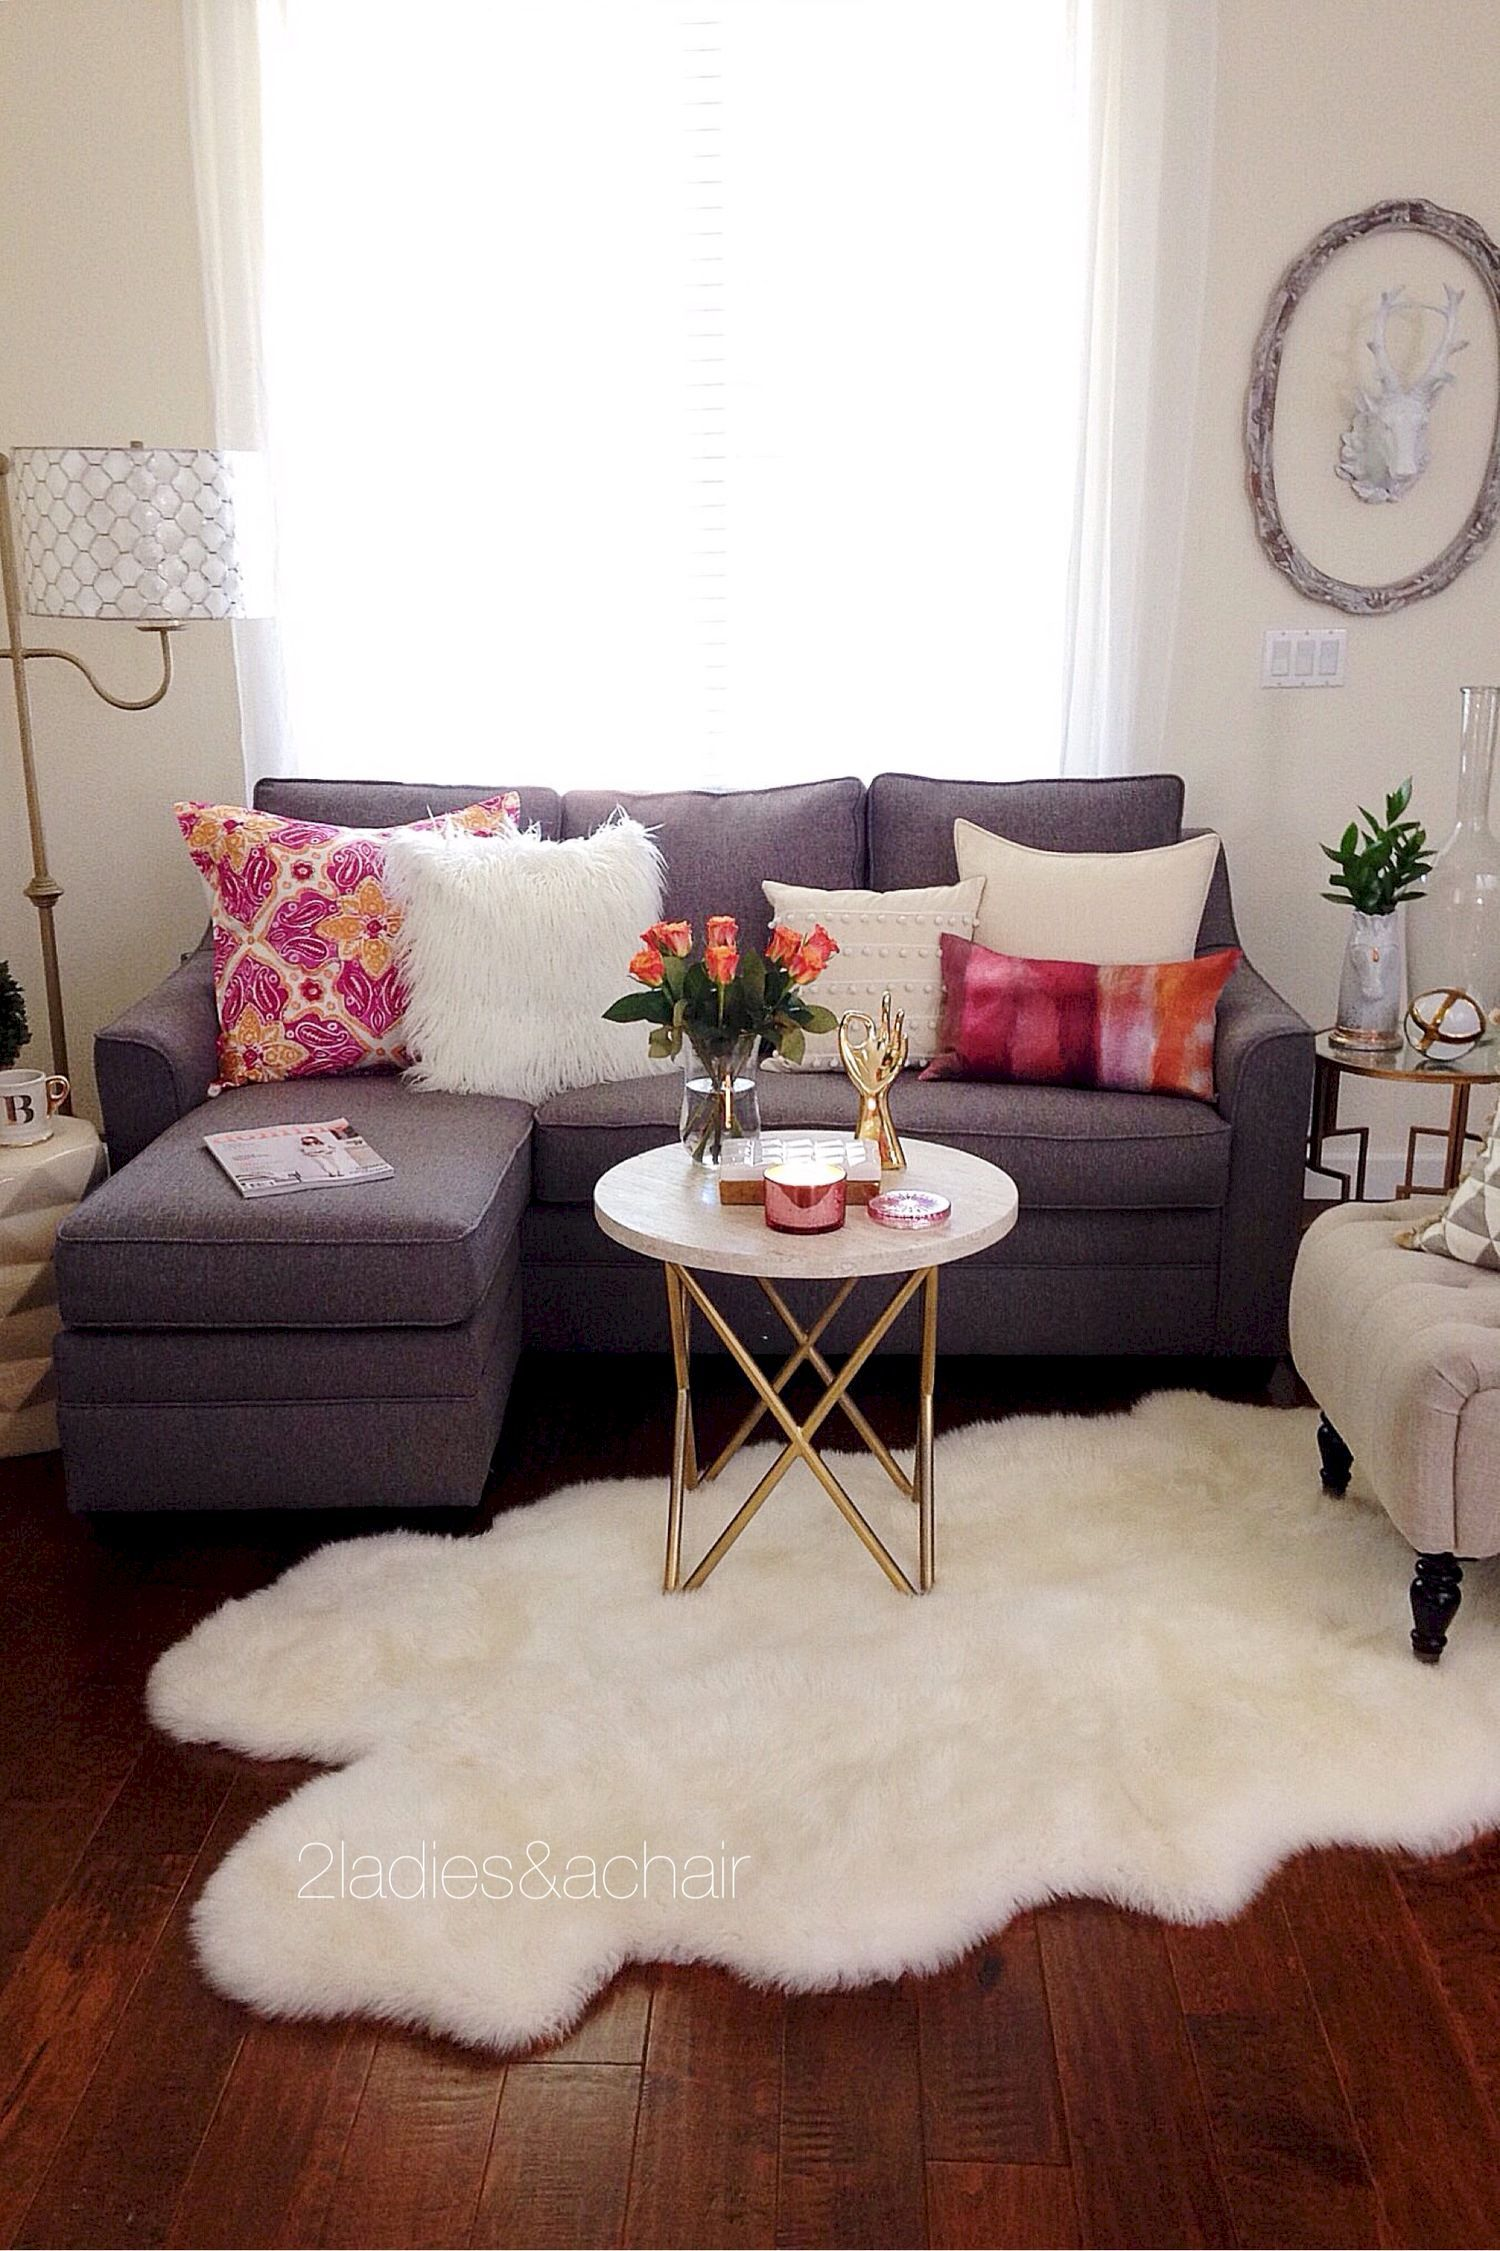 The Best Diy Apartment Small Living Room Ideas On A Budget